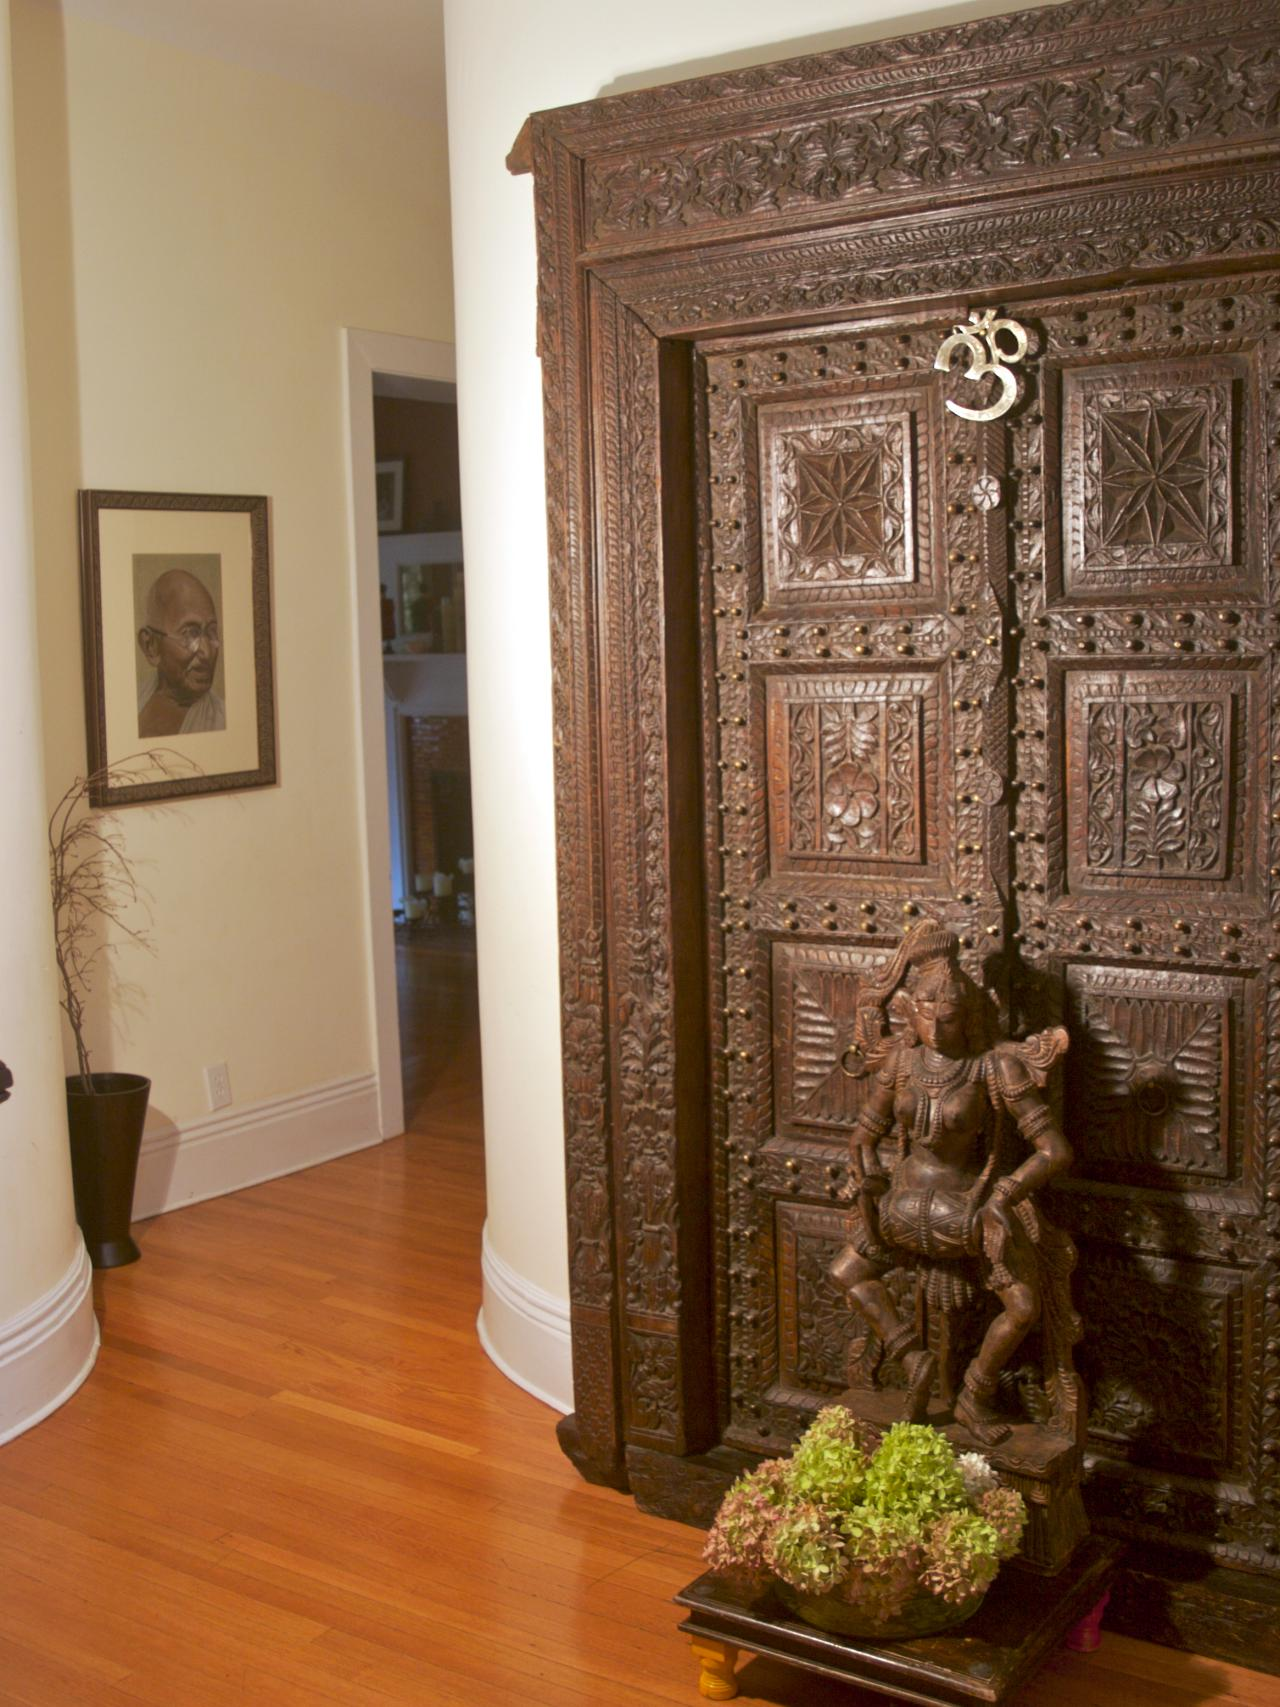 12 spaces inspired by india interior design styles and for Home front door design indian style